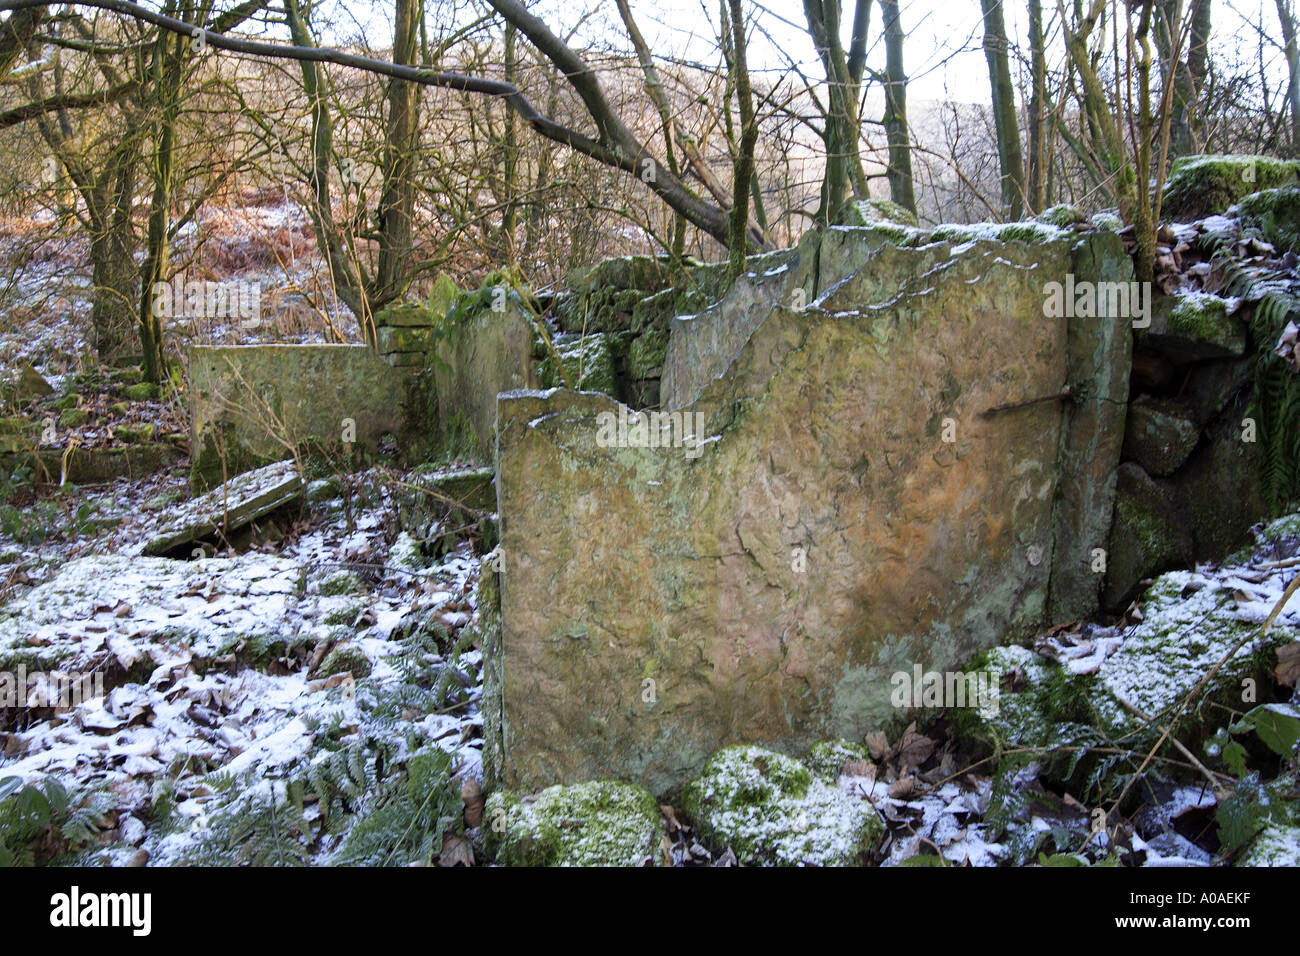 The remains of stone becks for scouring fluids for bleaching cotton at Washwheel Mill in the Cheesden Valley Heywood UK - Stock Image